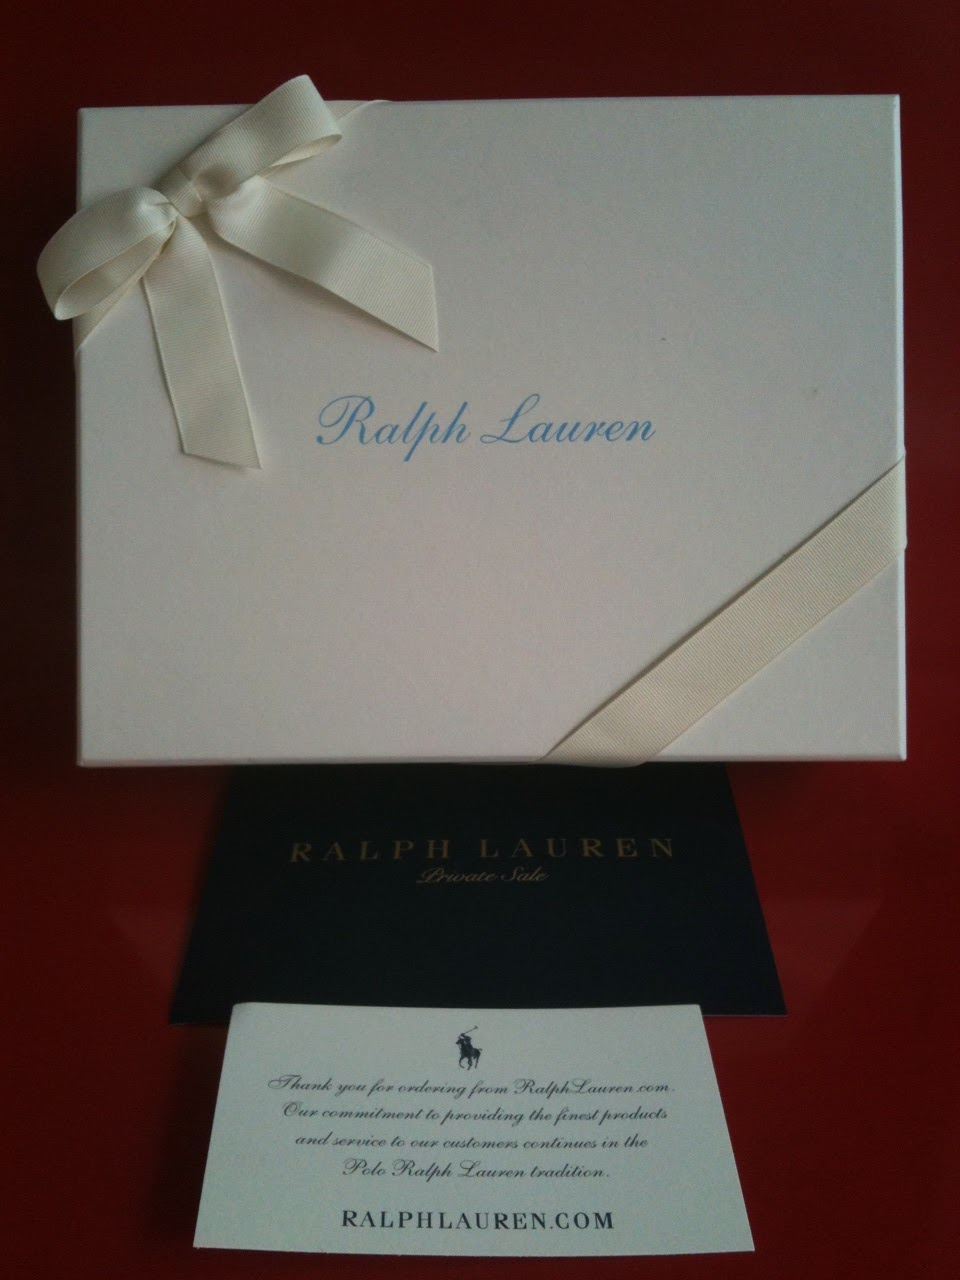 Ralph Lauren with Gift Boxes & TheMummyShop: Ralph Lauren with Gift Boxes